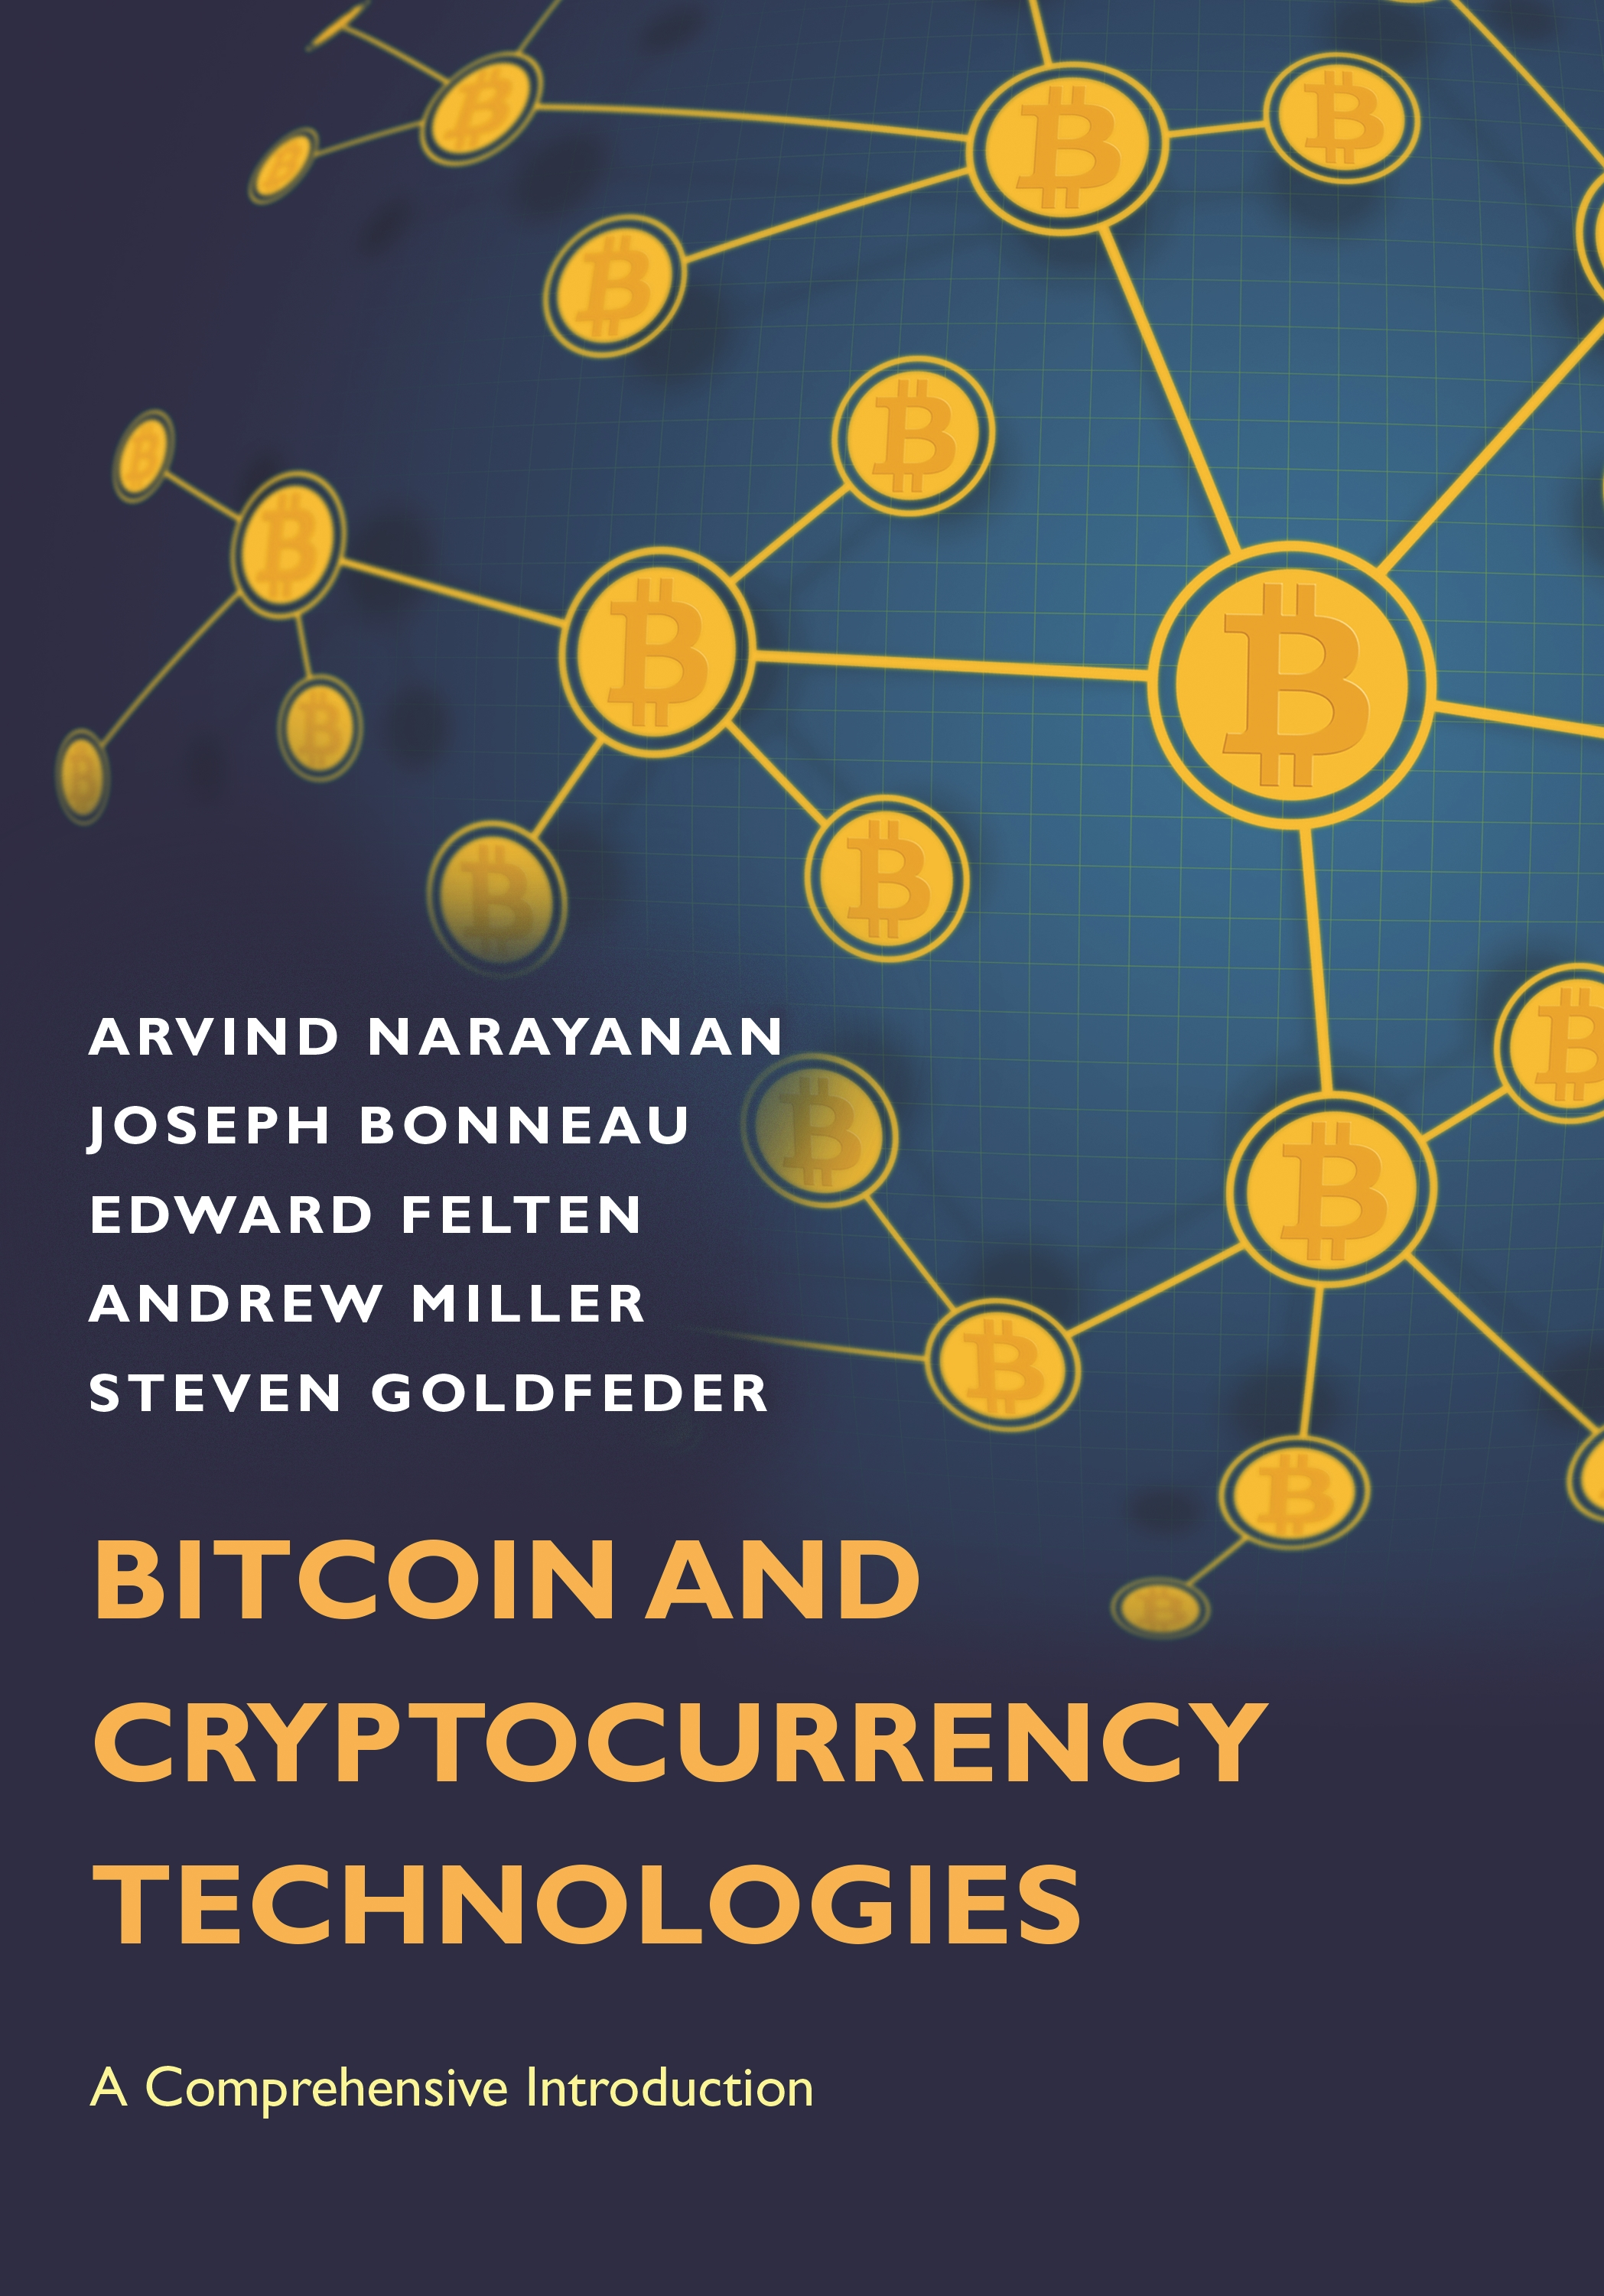 Download Ebook Bitcoin and Cryptocurrency Technologies by Arvind Narayanan Pdf